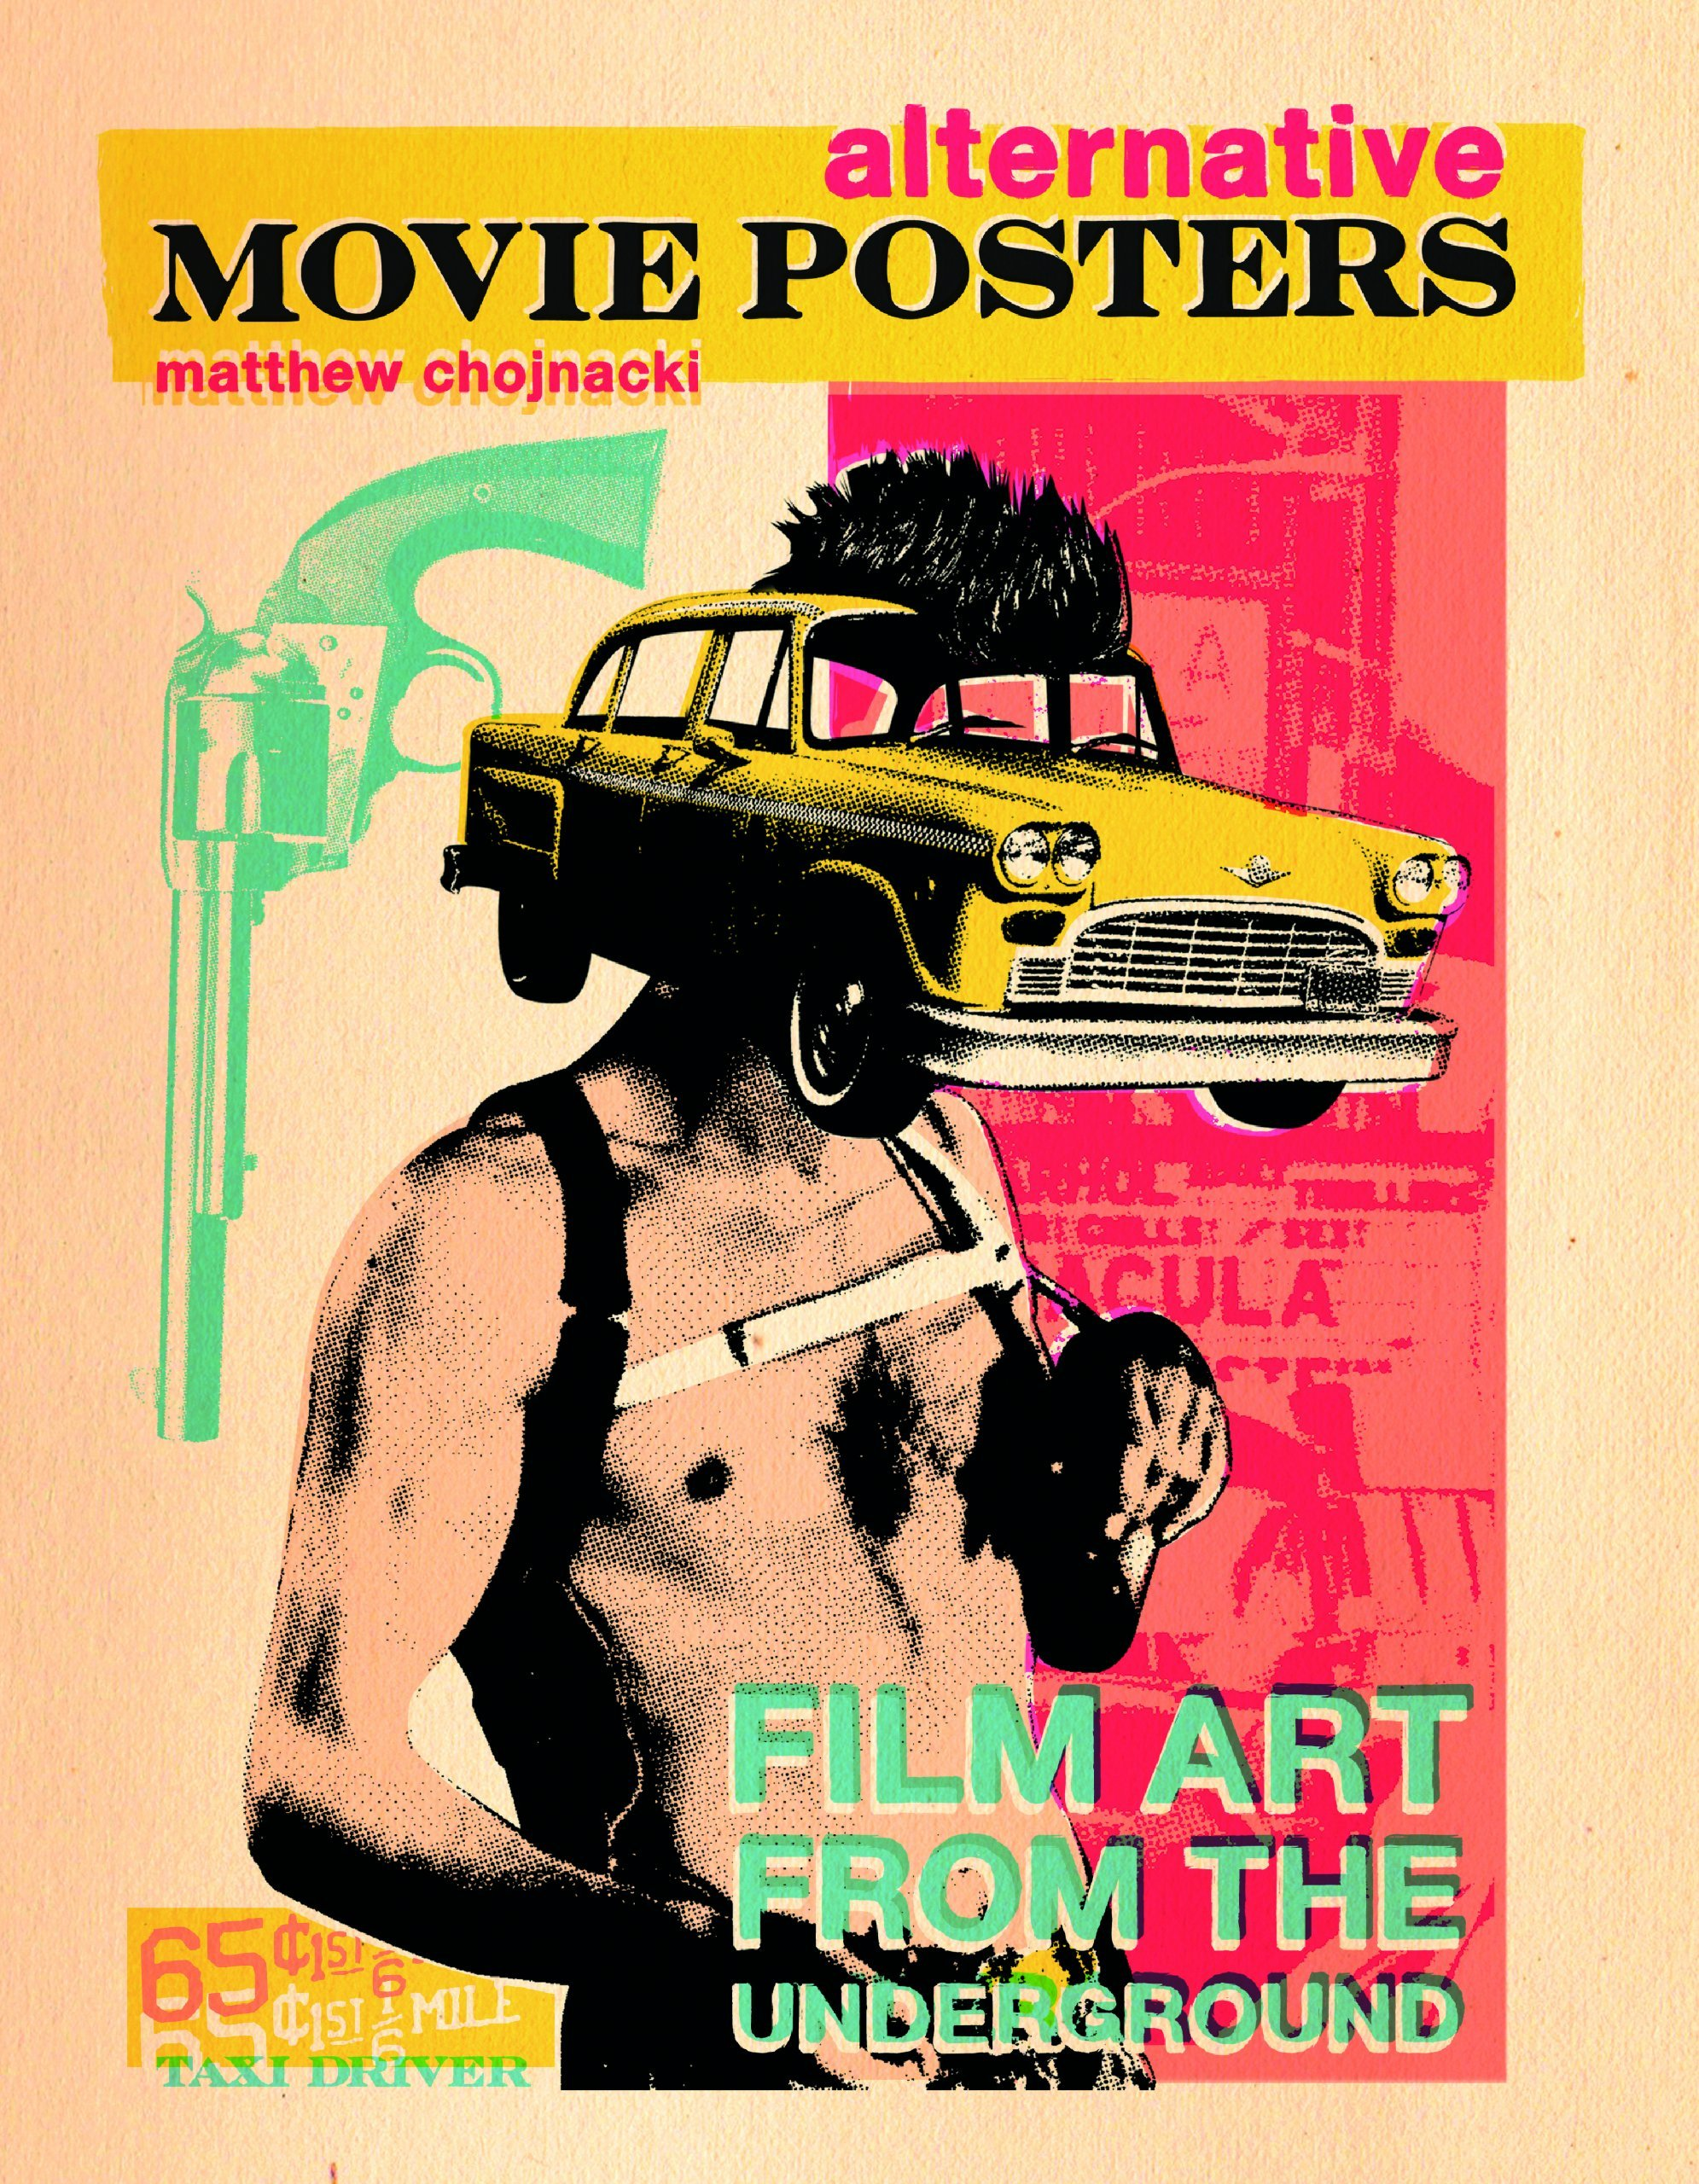 ALTERNATIVE MOVIE POSTER VOLUME I: FILM ART FROM THE UNDERGROUND